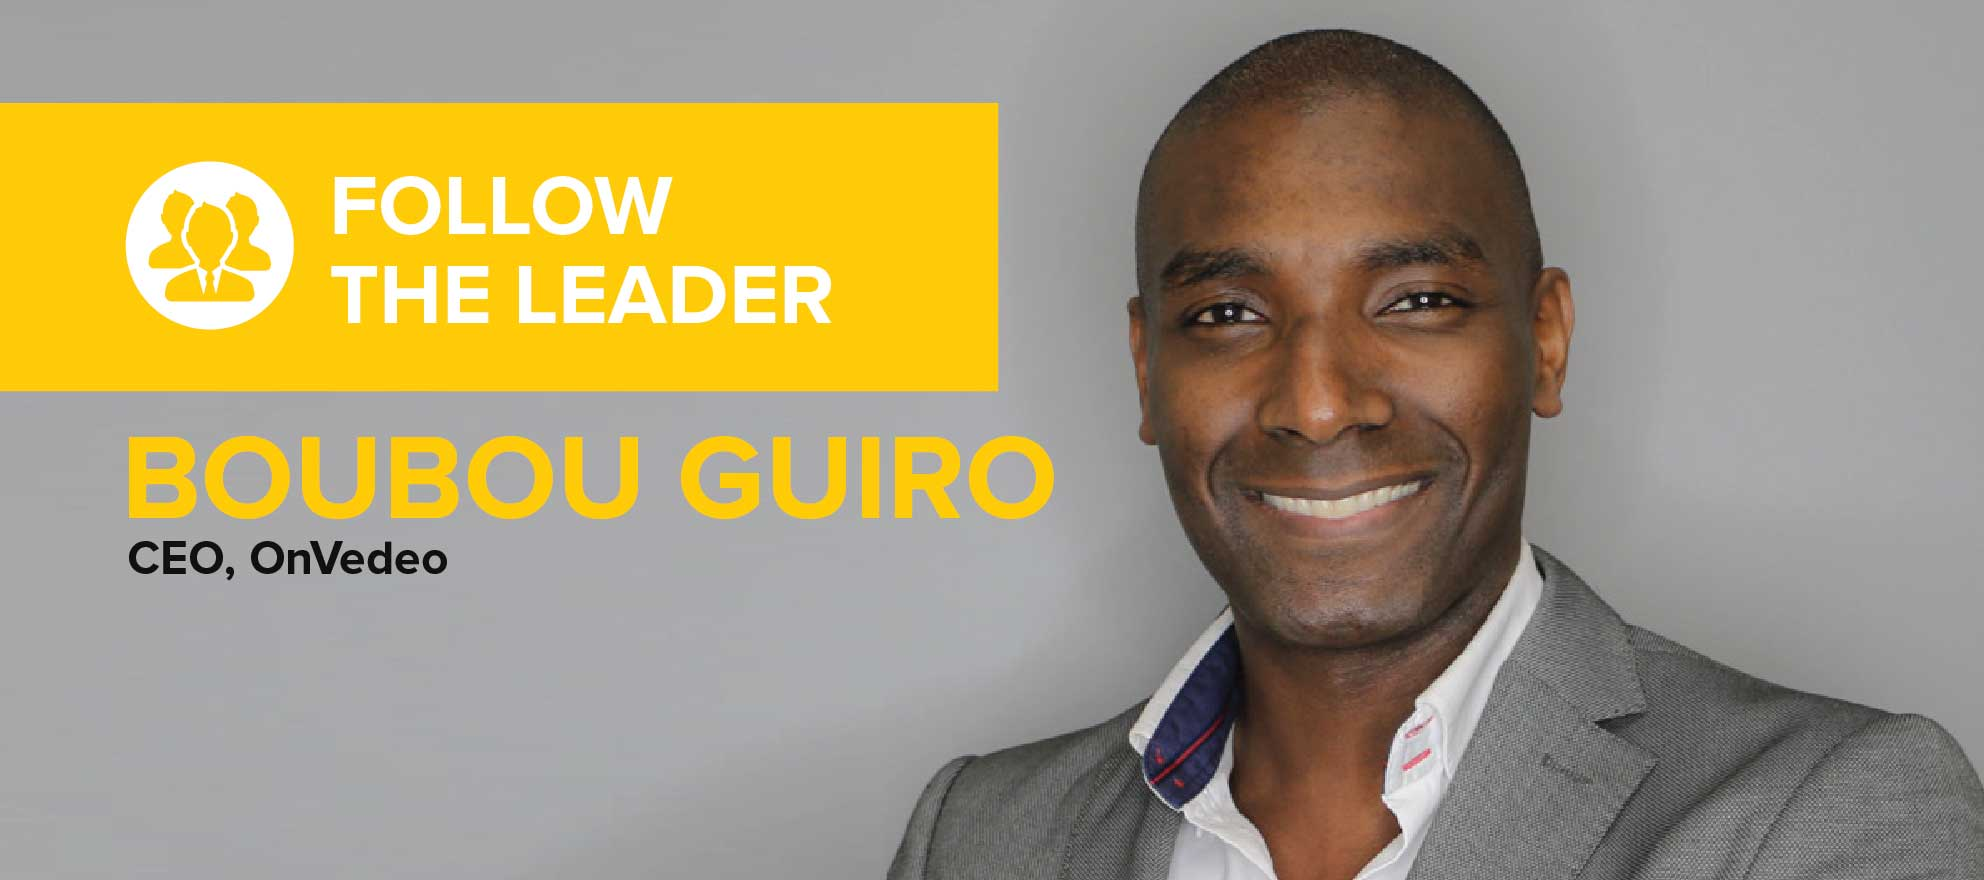 Boubou Guiro: 'Everybody wins if the consumer is happy'